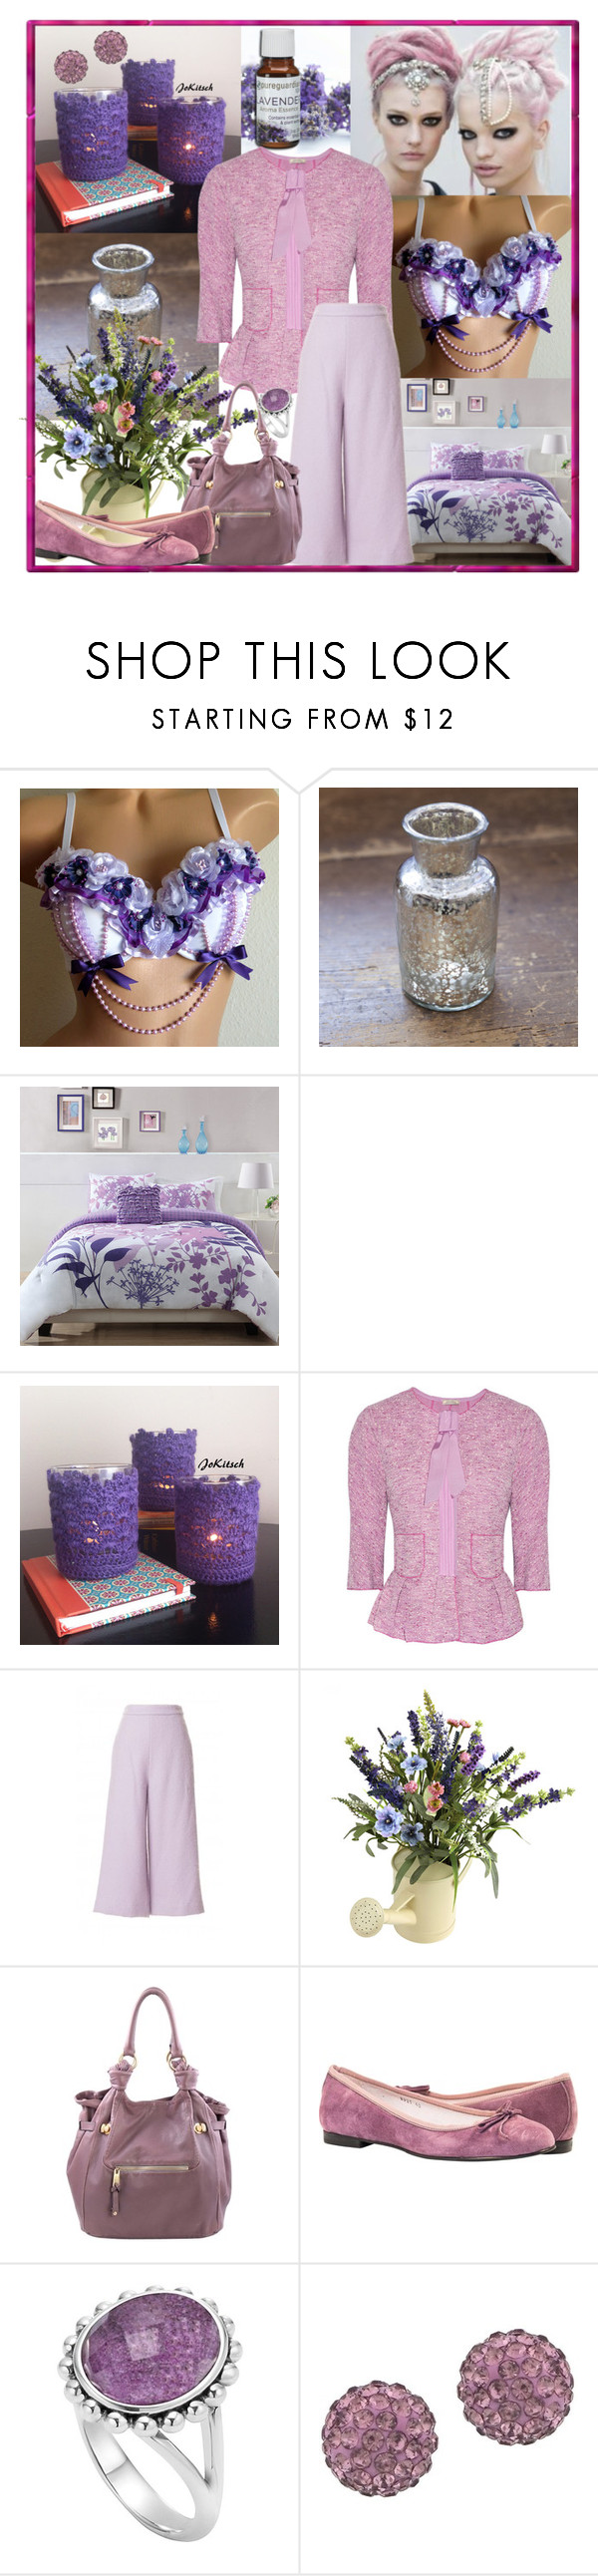 """Lavender Monochrome"" by fantasiegirl ❤ liked on Polyvore featuring jcp, Aroma, Nina Ricci, Nearly Natural, Marc Jacobs and Lord & Taylor"